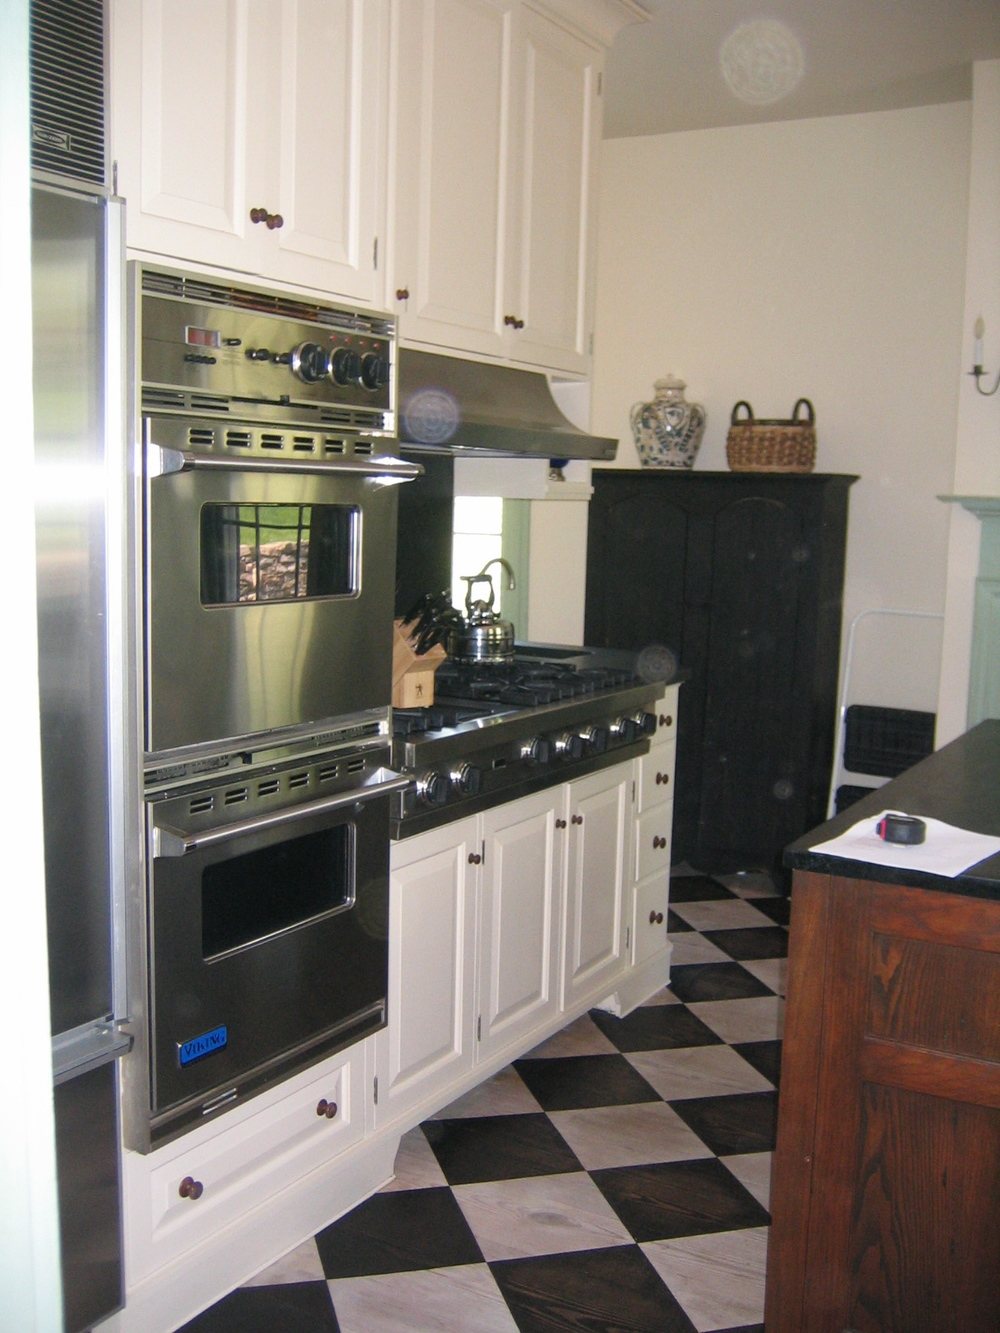 16 Kitchen Stove Before.JPG